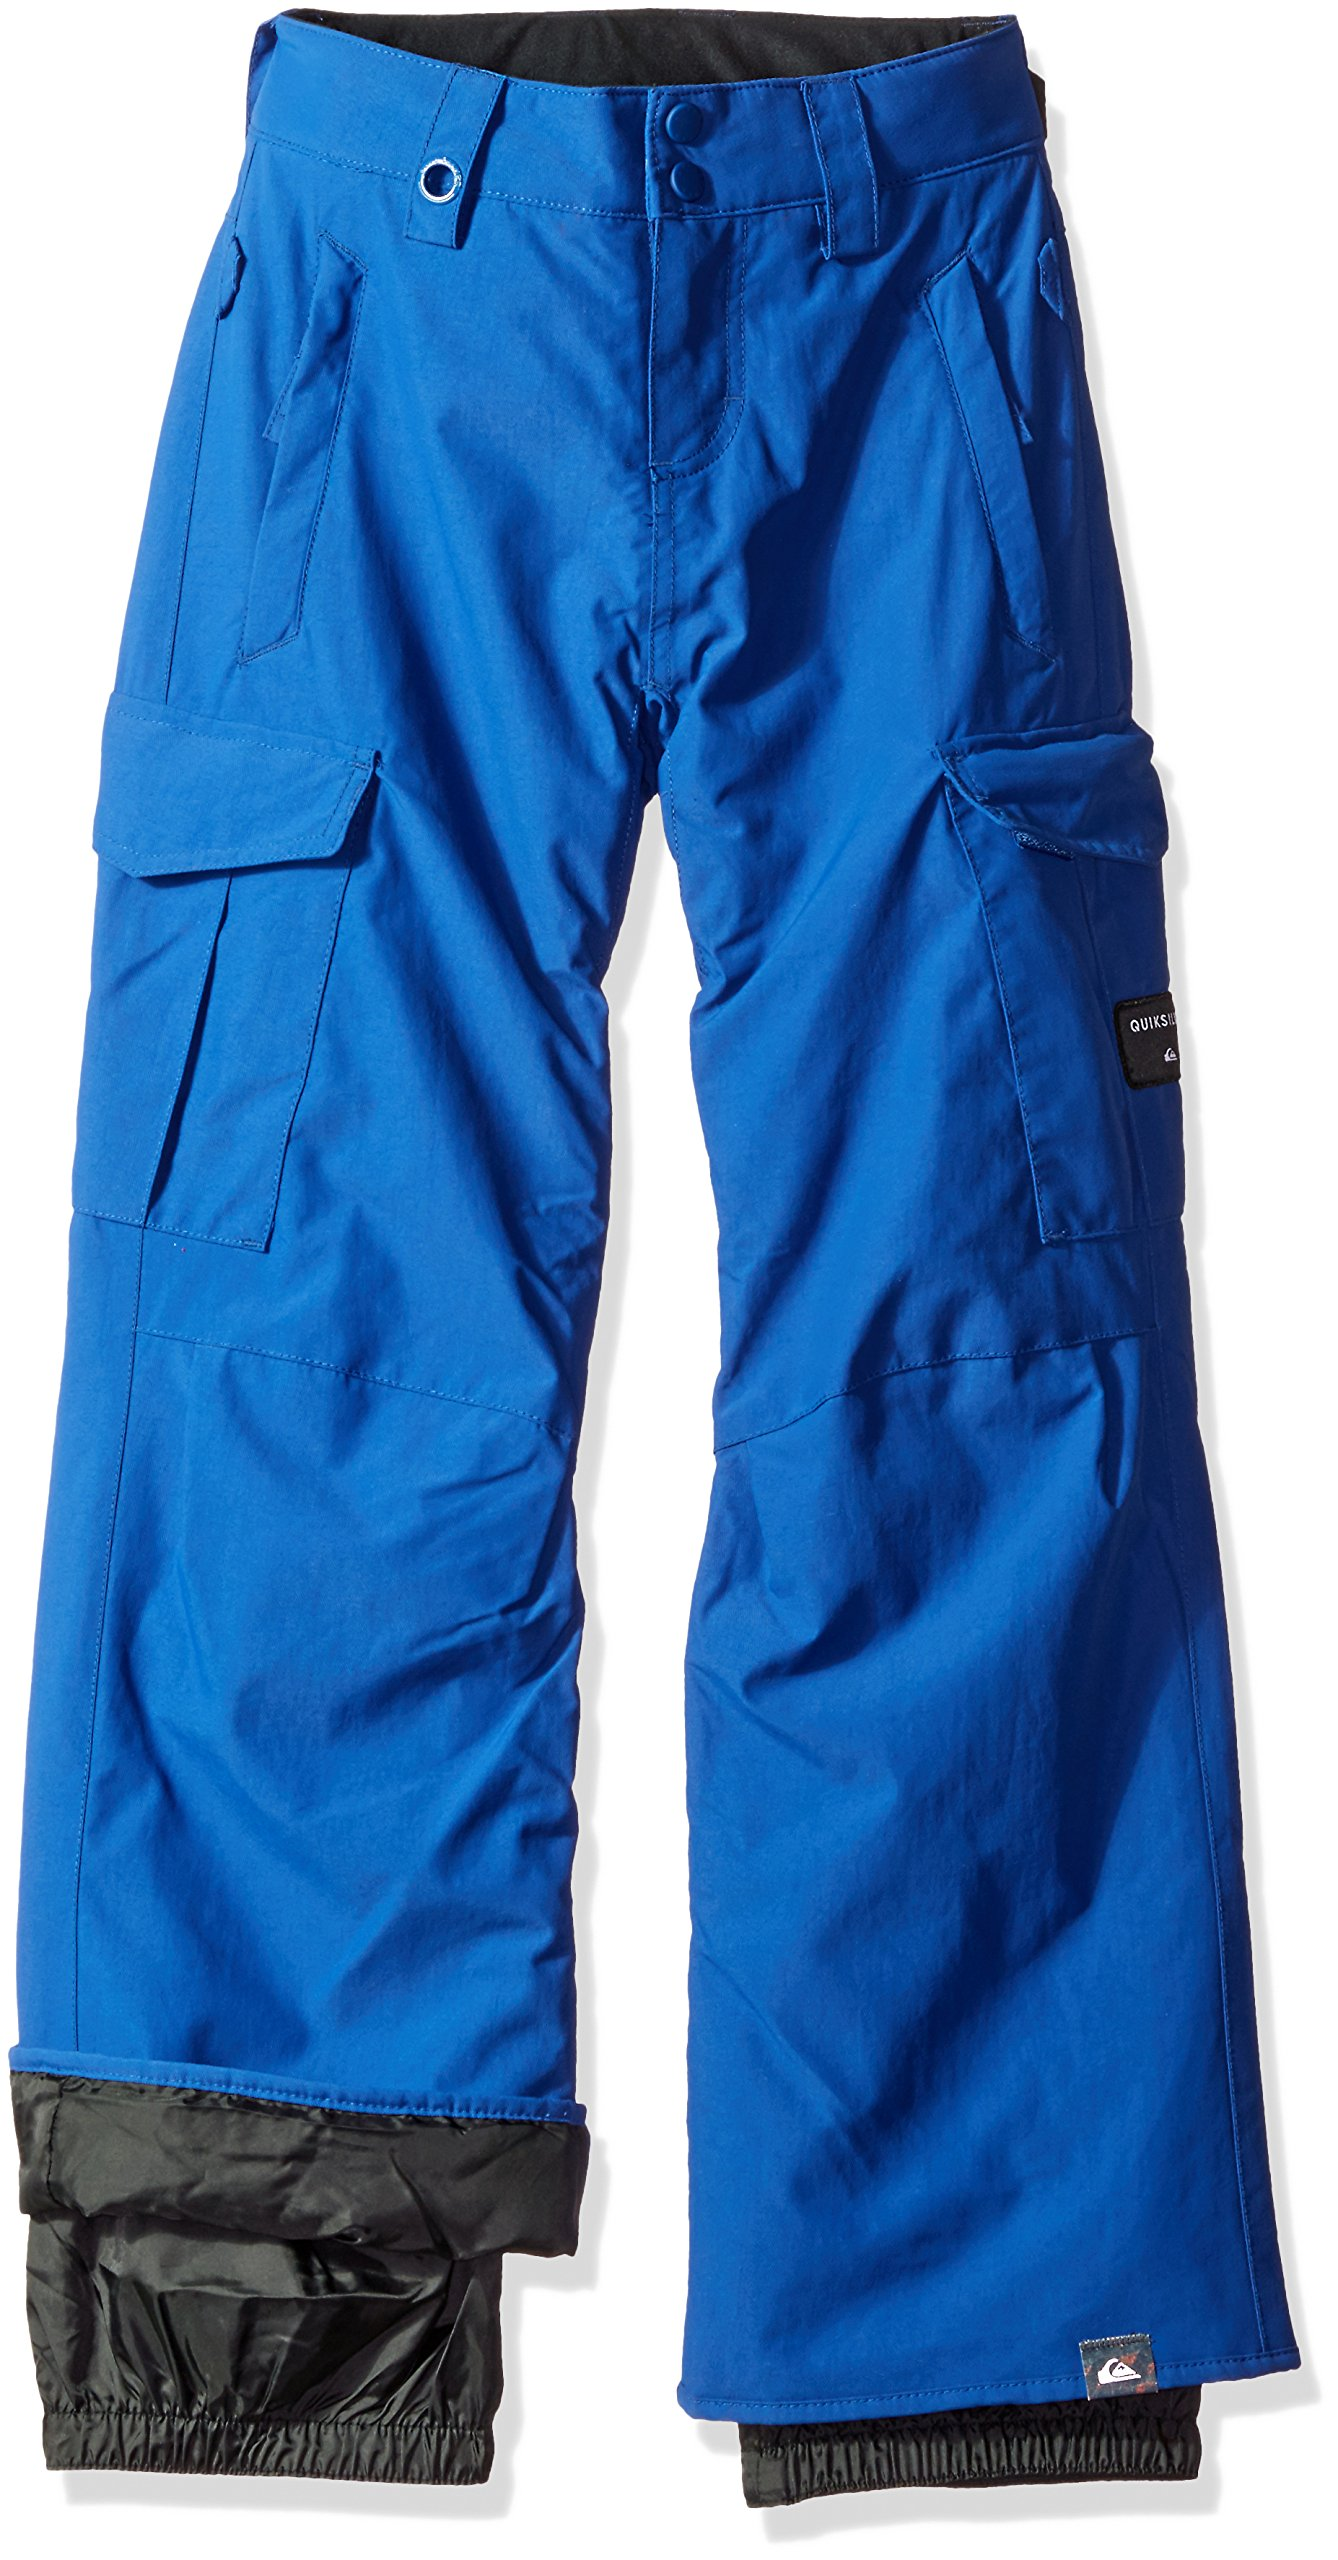 Quiksilver Big Boys' Porter Youth Snow Pant, Sodalite Blue, 14/XL by Quiksilver